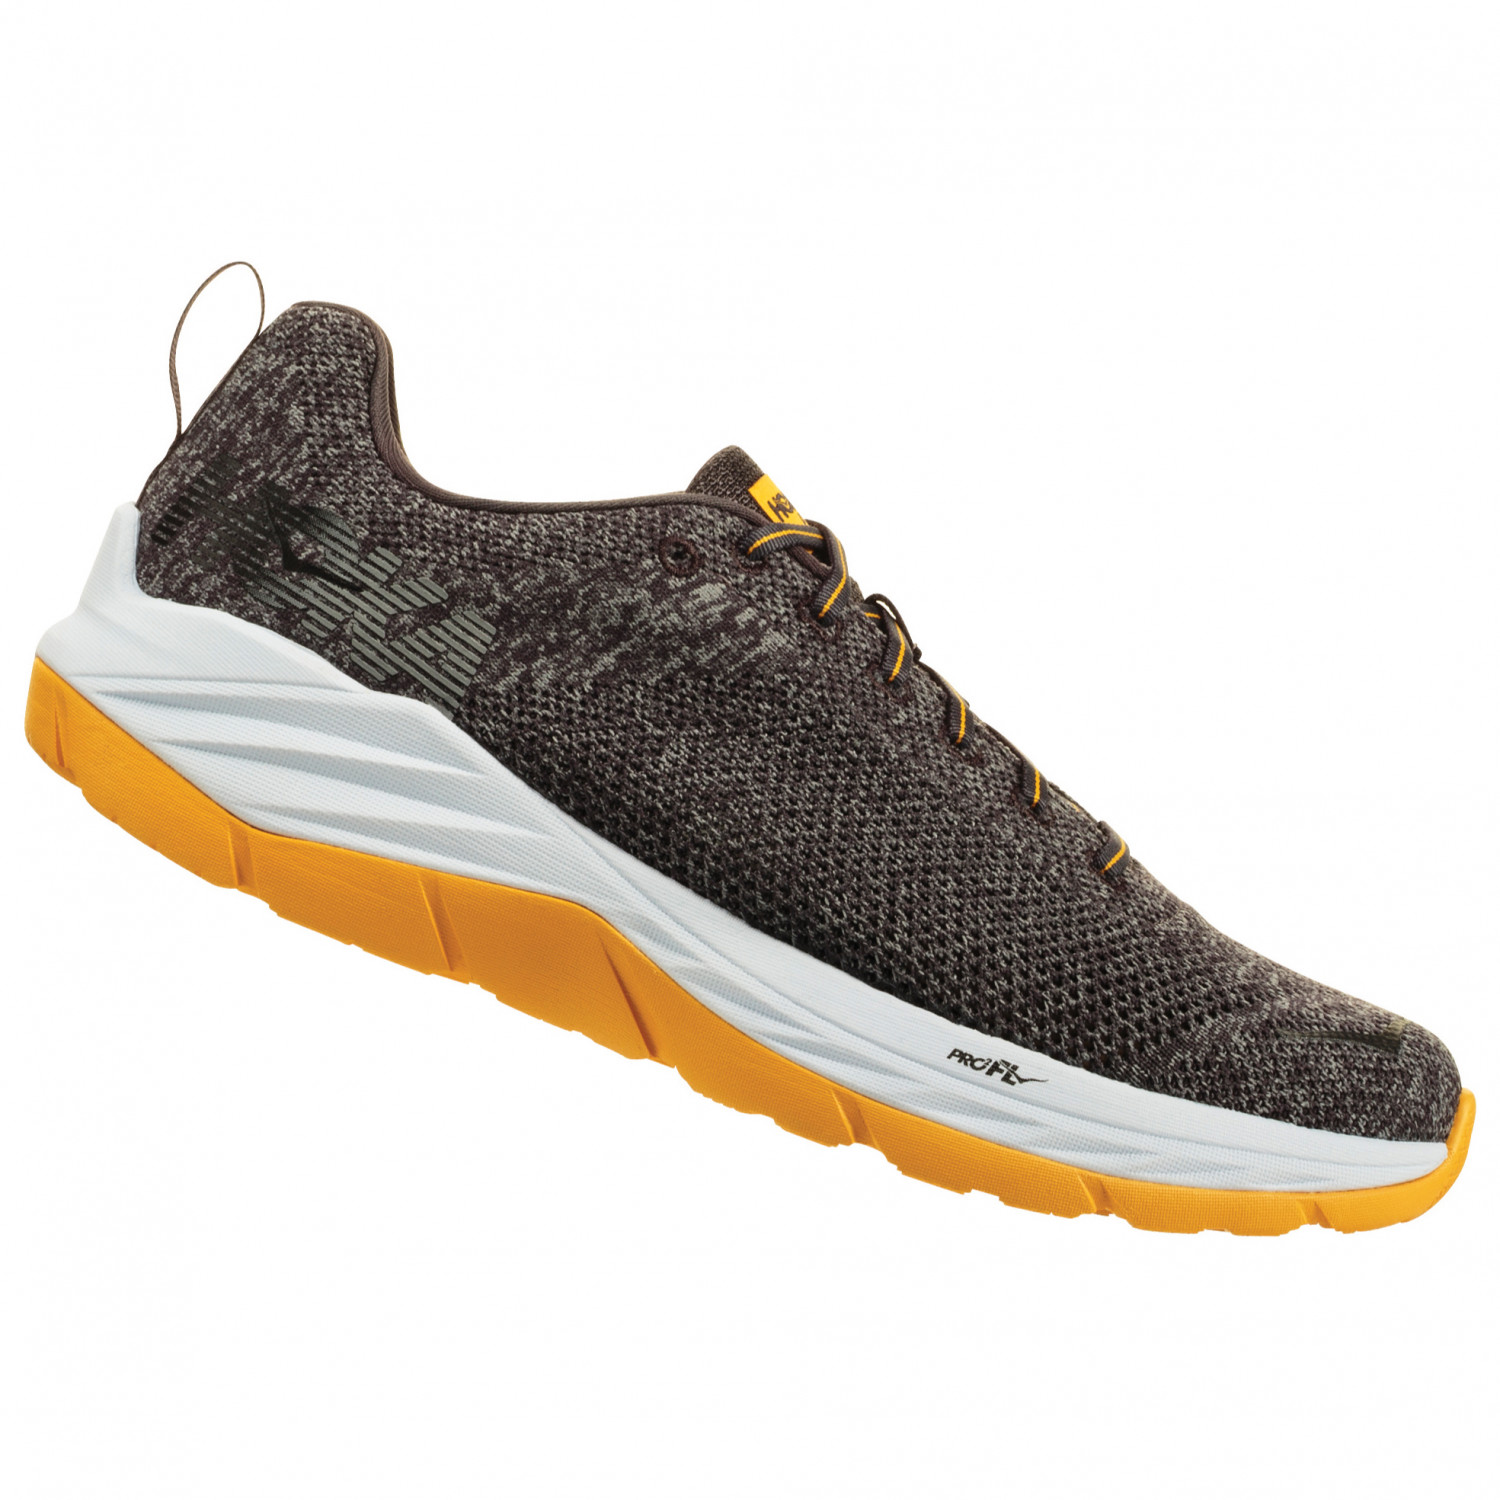 hoka one one mach running shoes mens free uk delivery